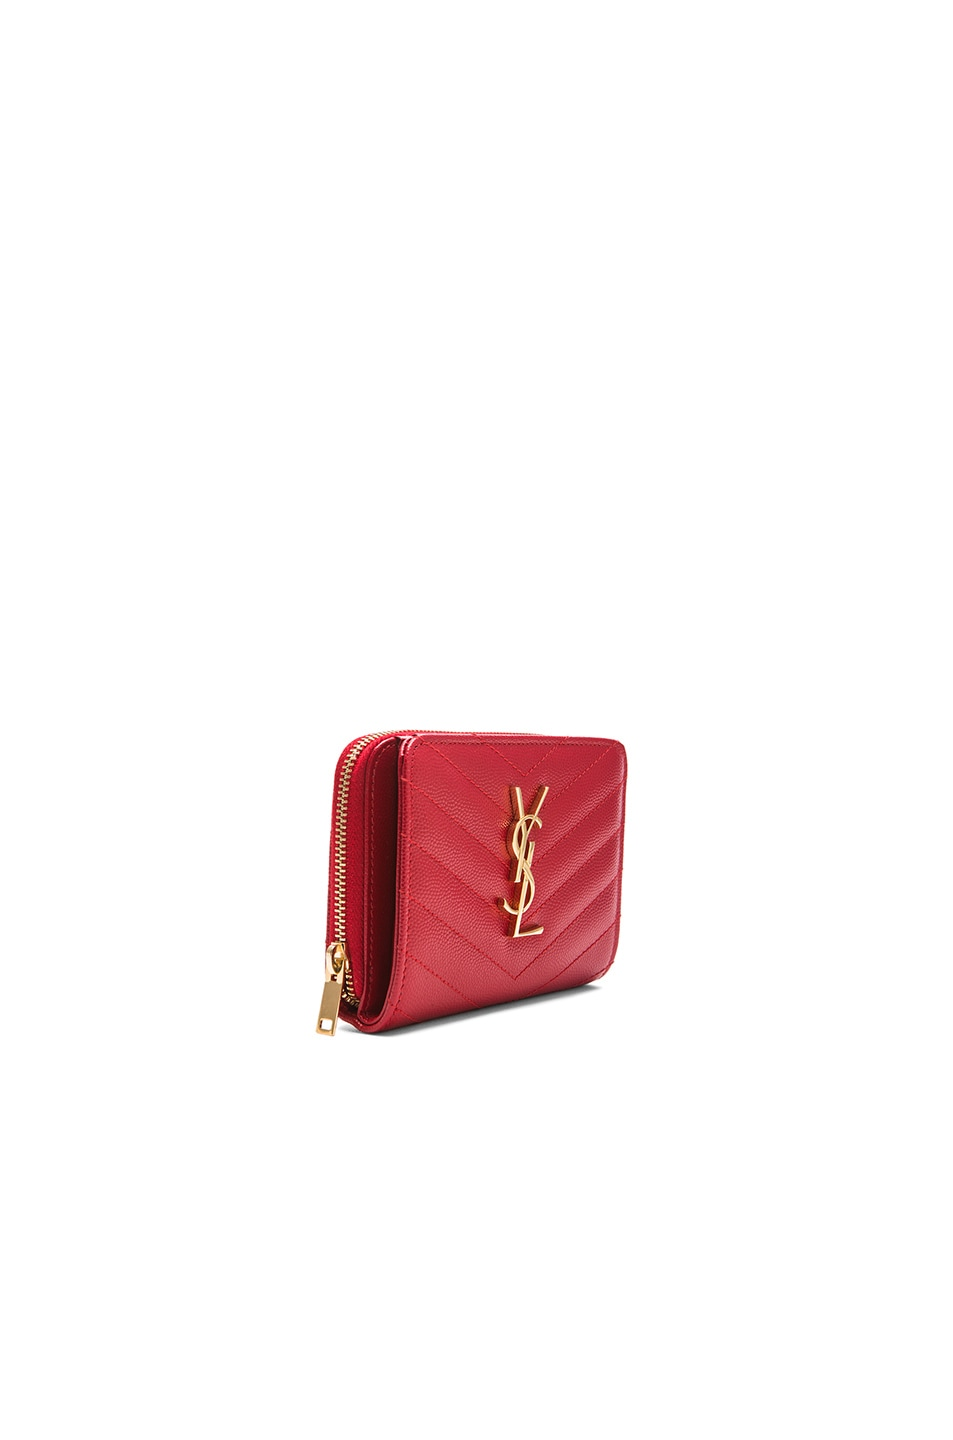 Saint Laurent Monogram Compact Zip Around Wallet in New Red | FWRD